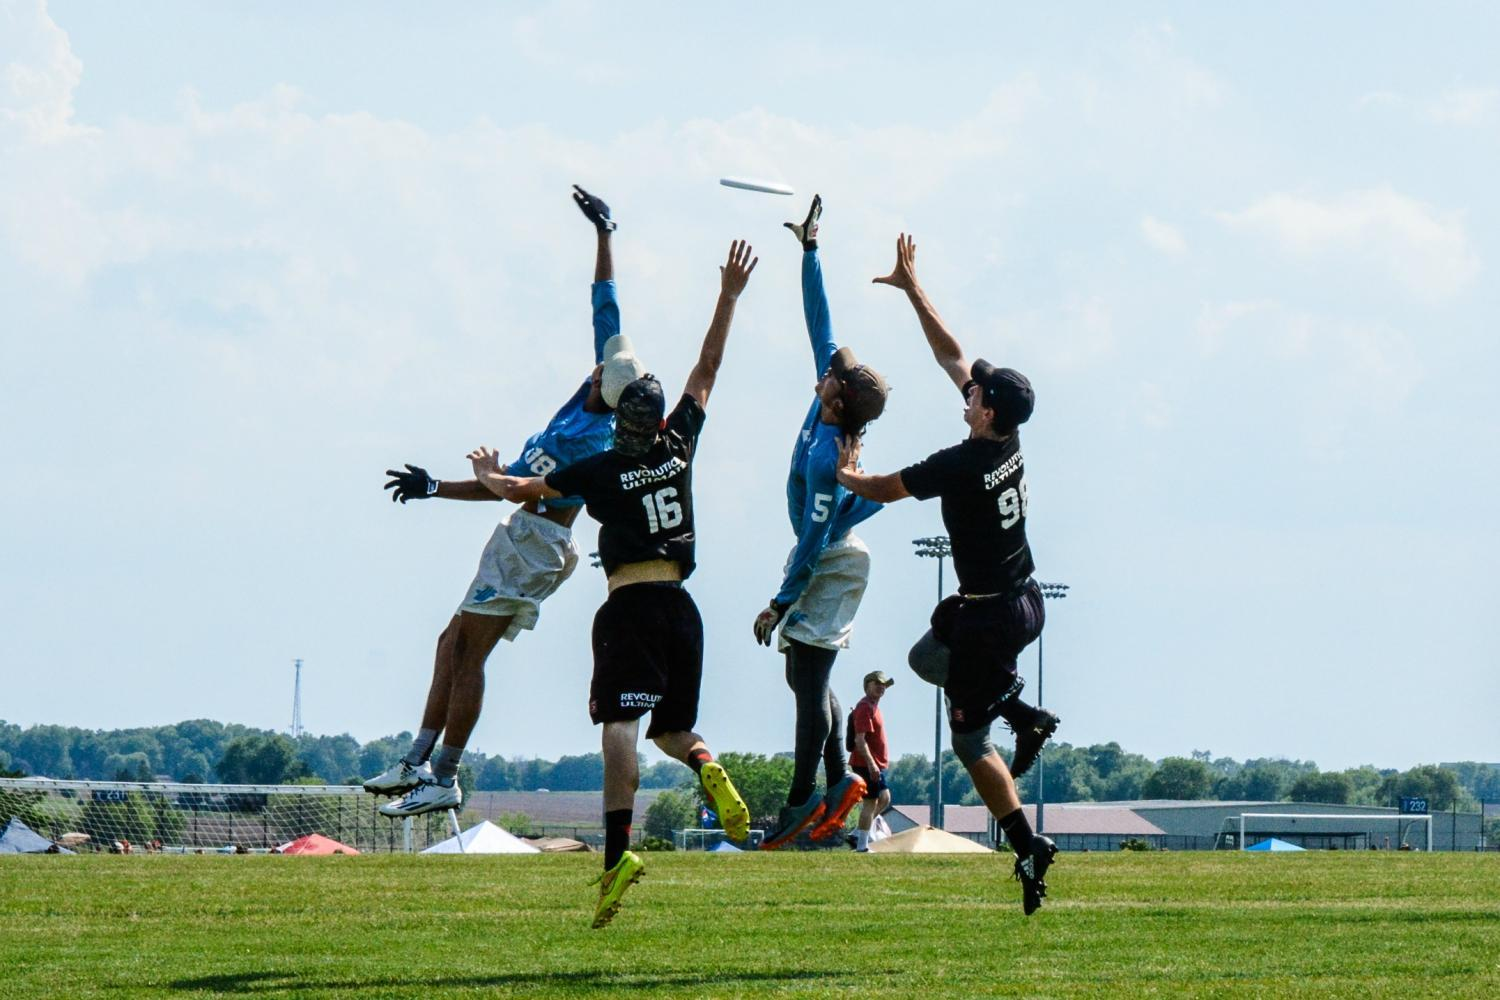 Ibo Pepic '17 and Dilon Crowell '17 jump for the disc.